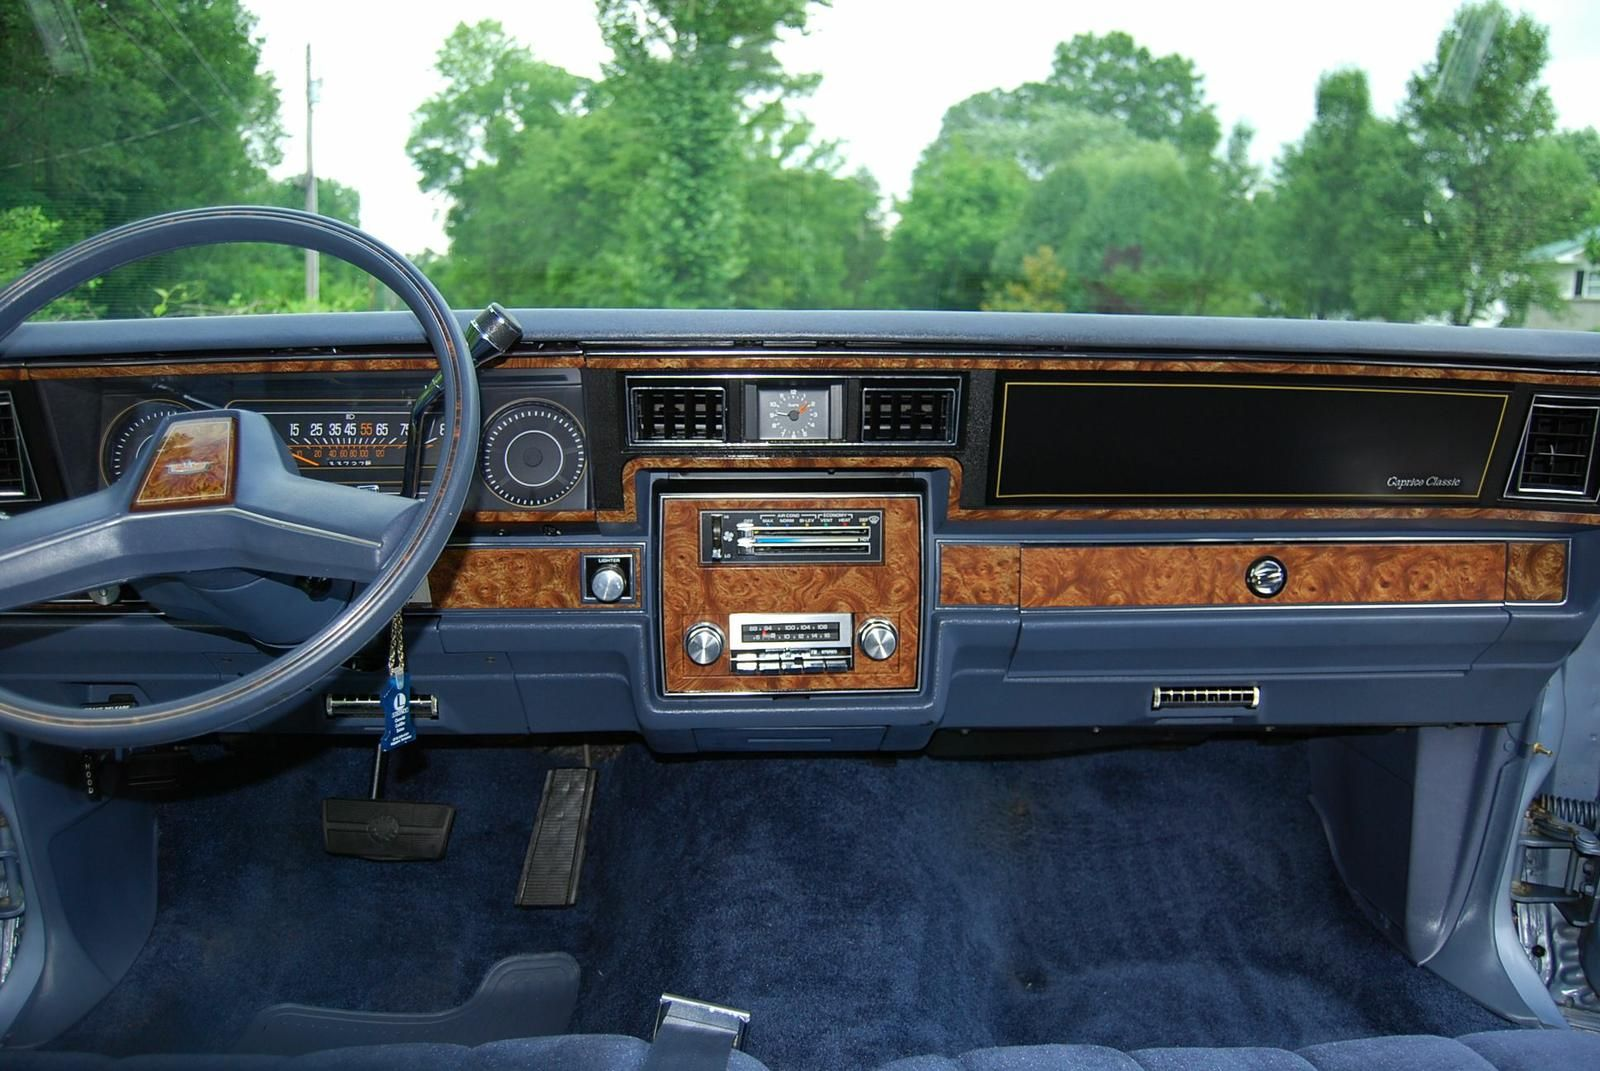 1984 Chevrolet Caprice Classic In Light Royal Blue Poly 5 0l V 8 With 33 000 Miles Chevrolet Caprice Chevy Caprice Classic Caprice Classic